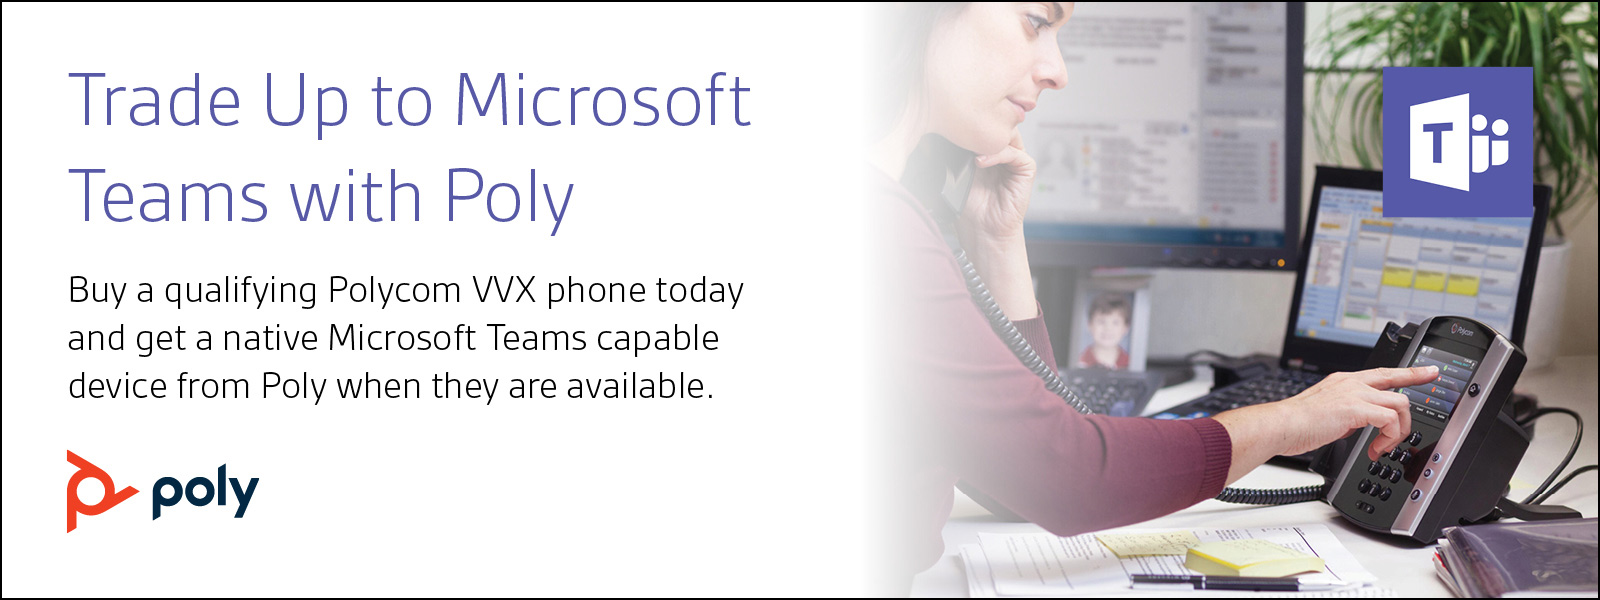 Trade Up to Microsoft Teams with Poly | Buy a qualifying Polycom VVX